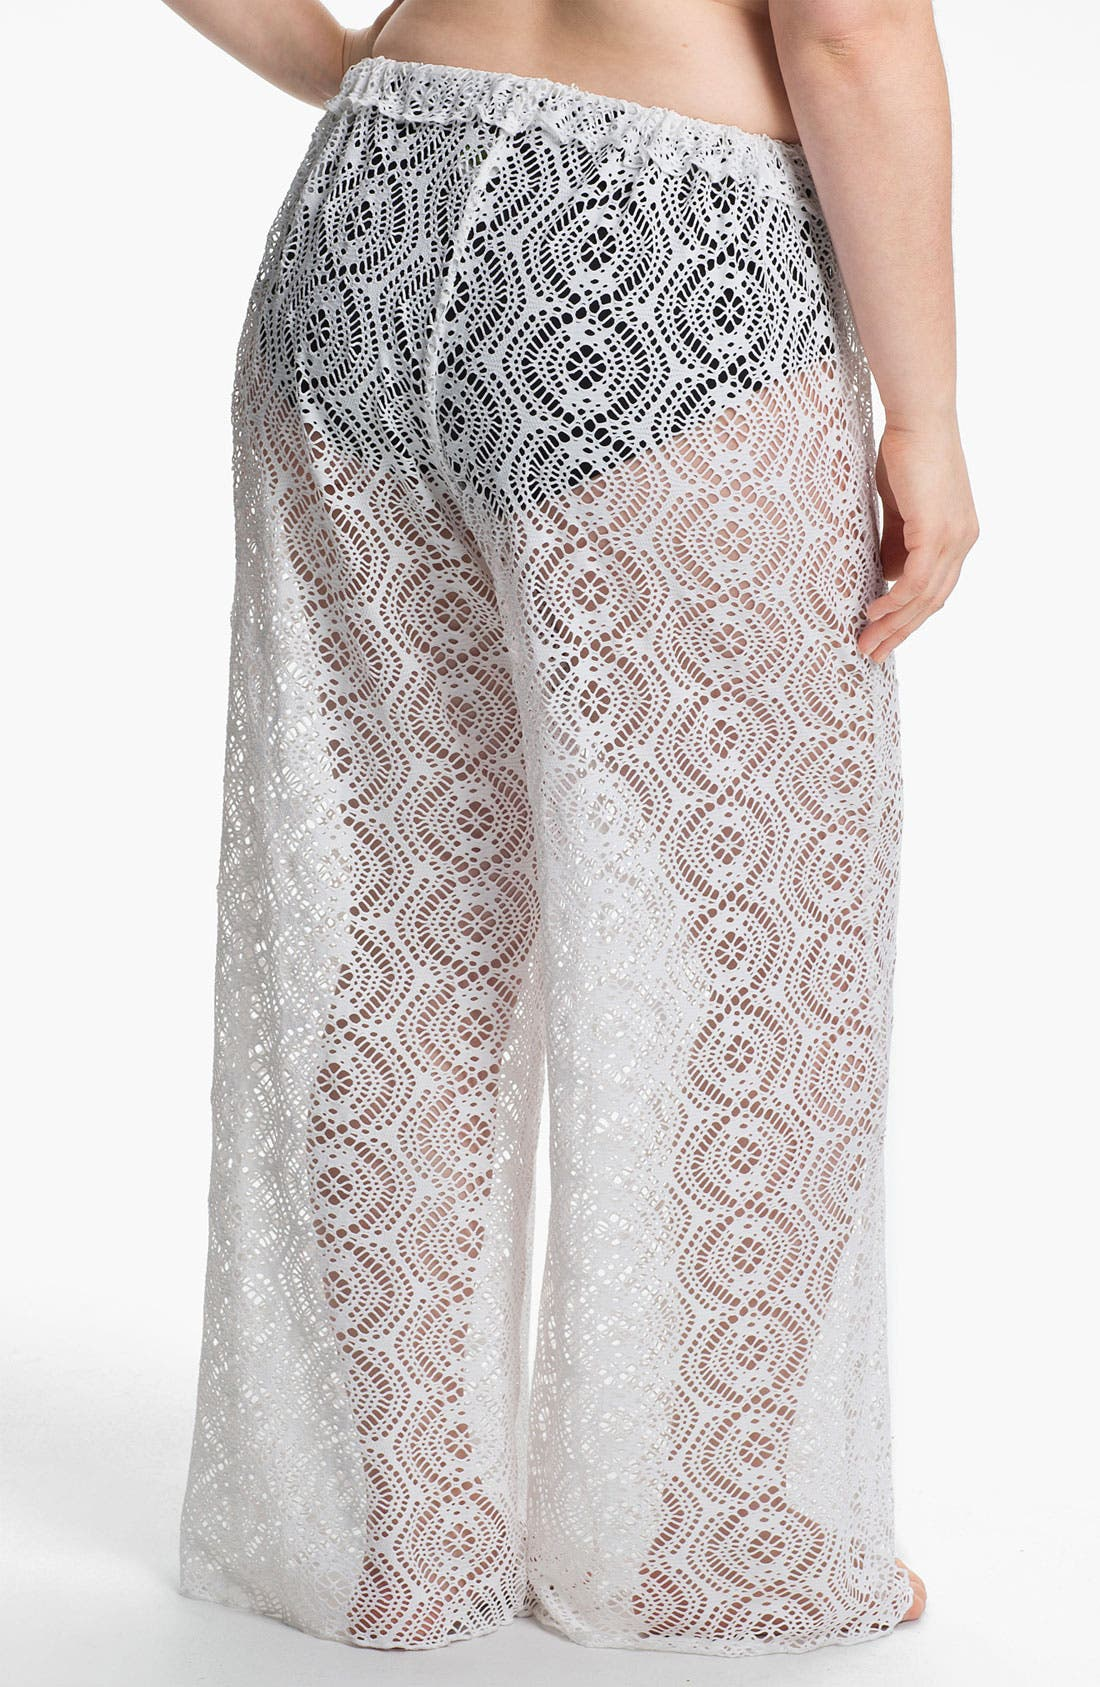 Alternate Image 2  - Becca Etc. 'Marbella' Crochet Cover-Up Pants (Plus Size)